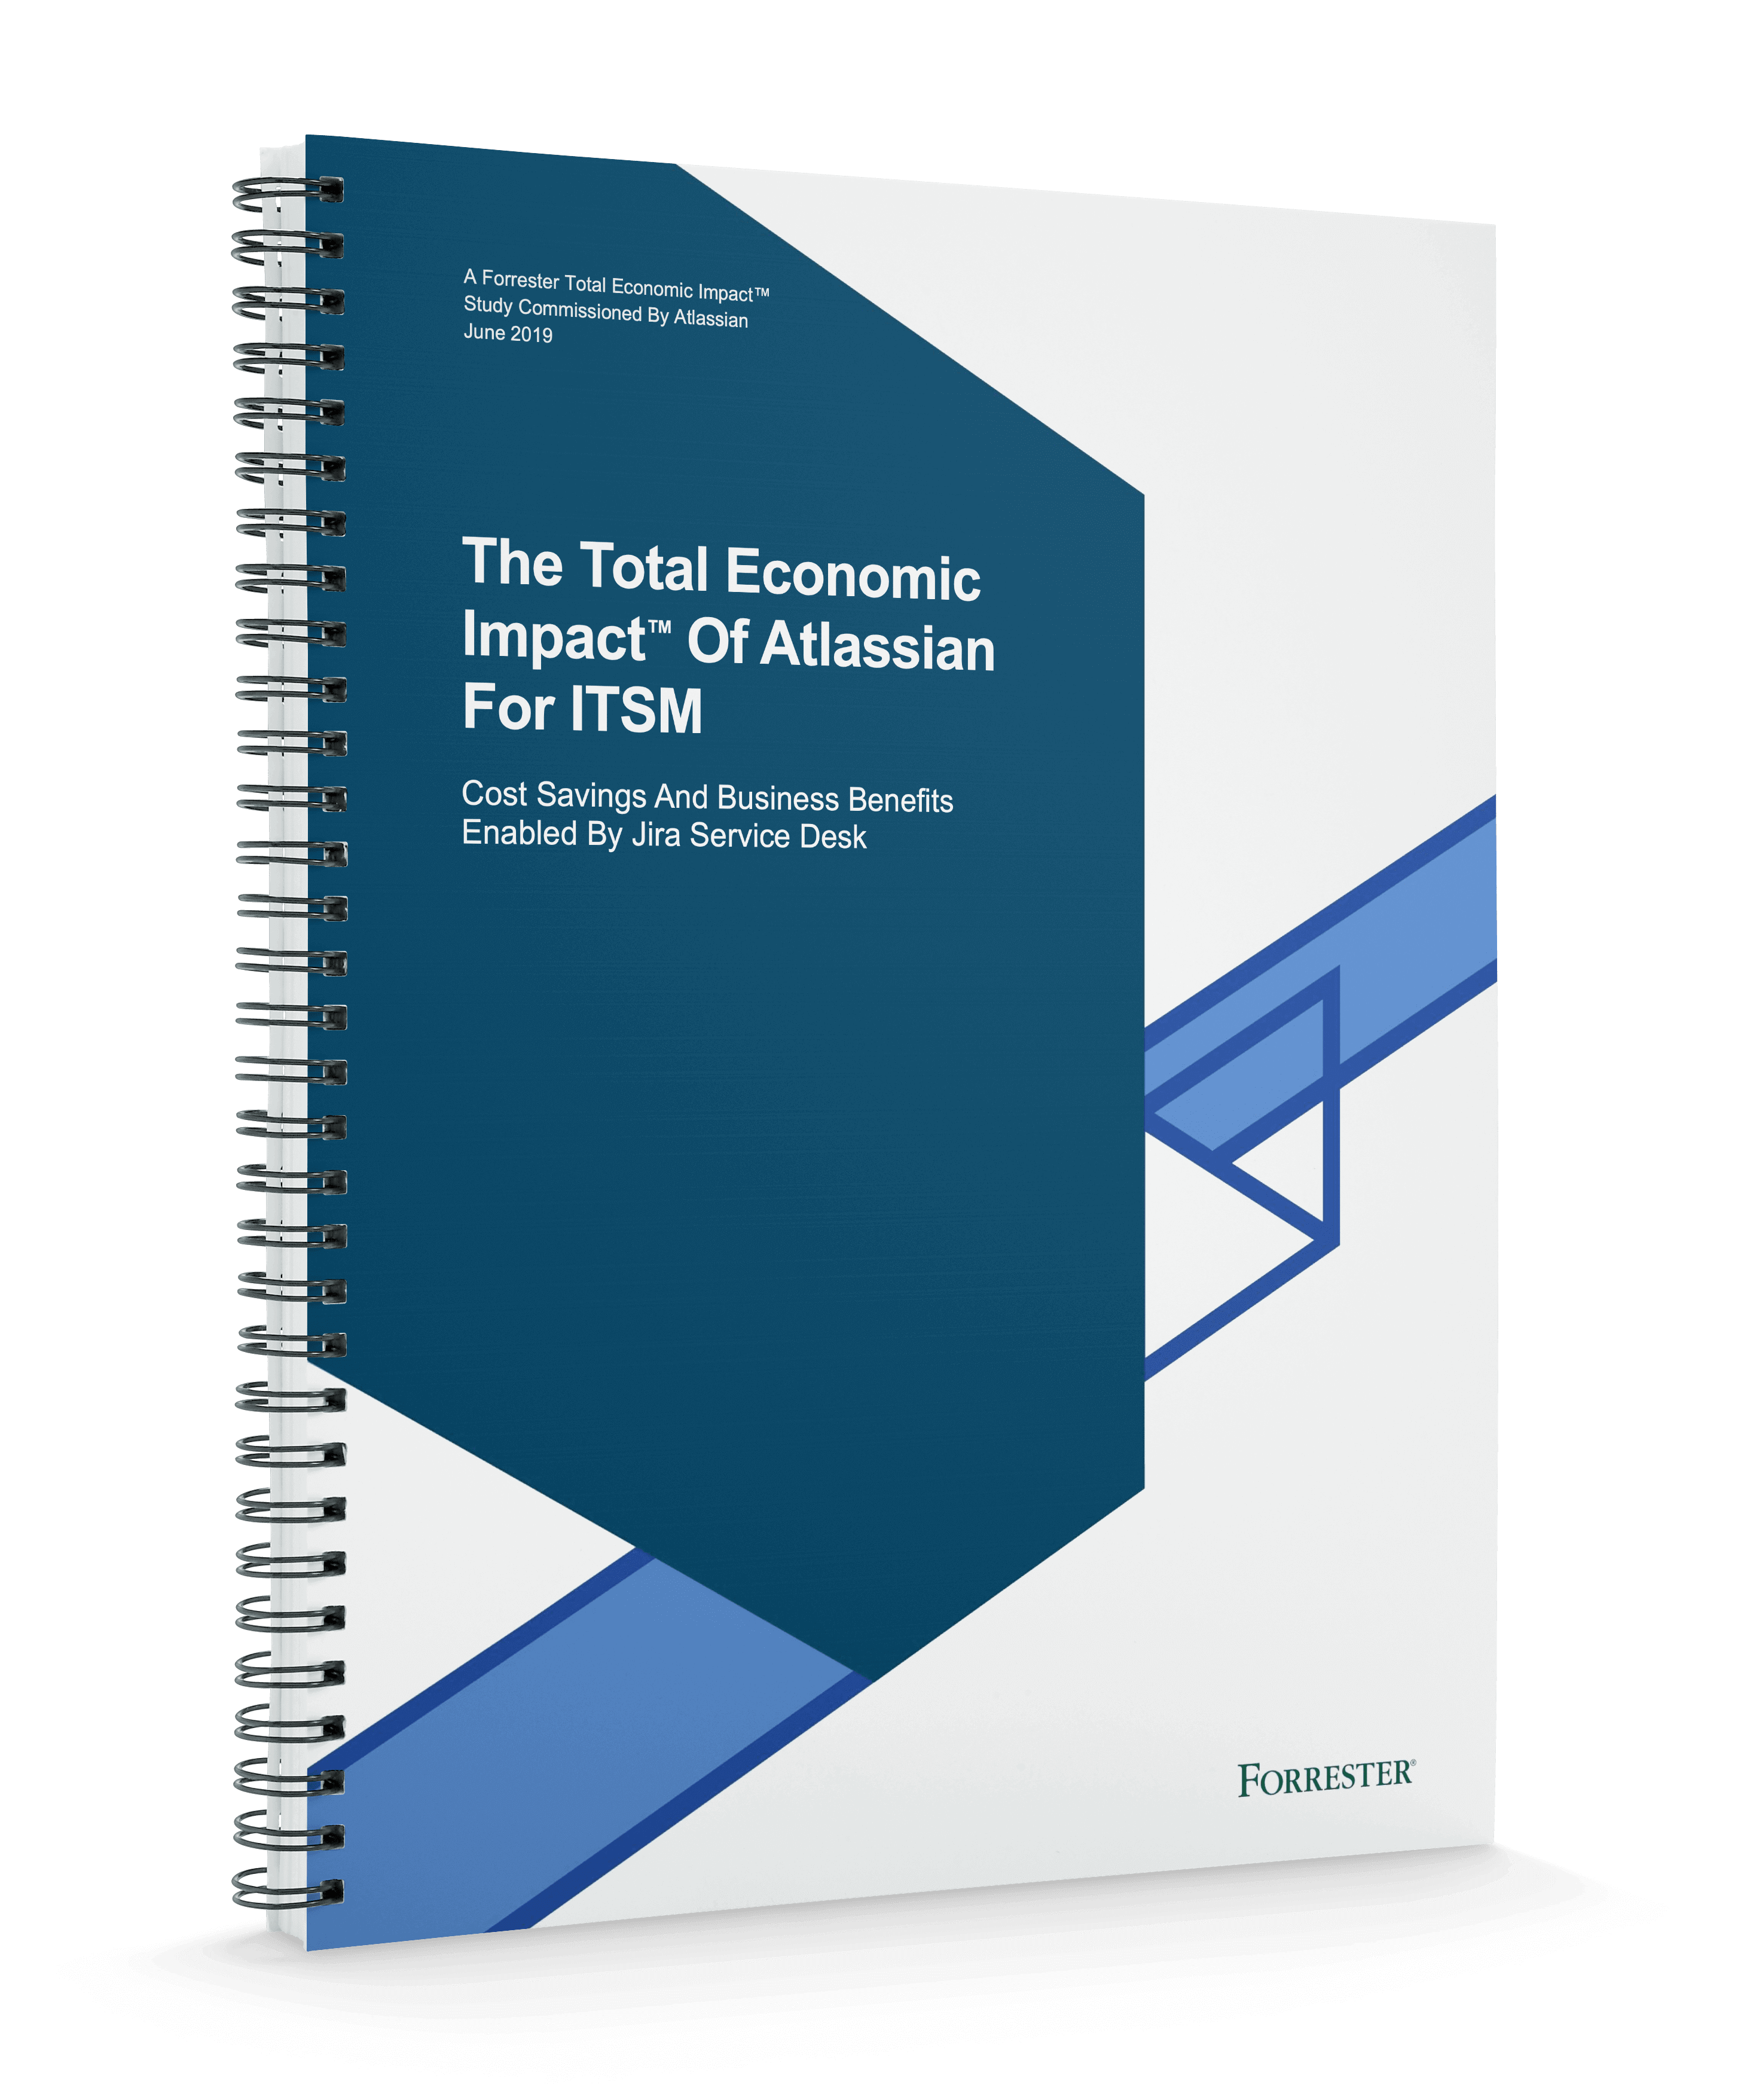 ITSM용 Atlassian의 Forrester Total Economic Impact™